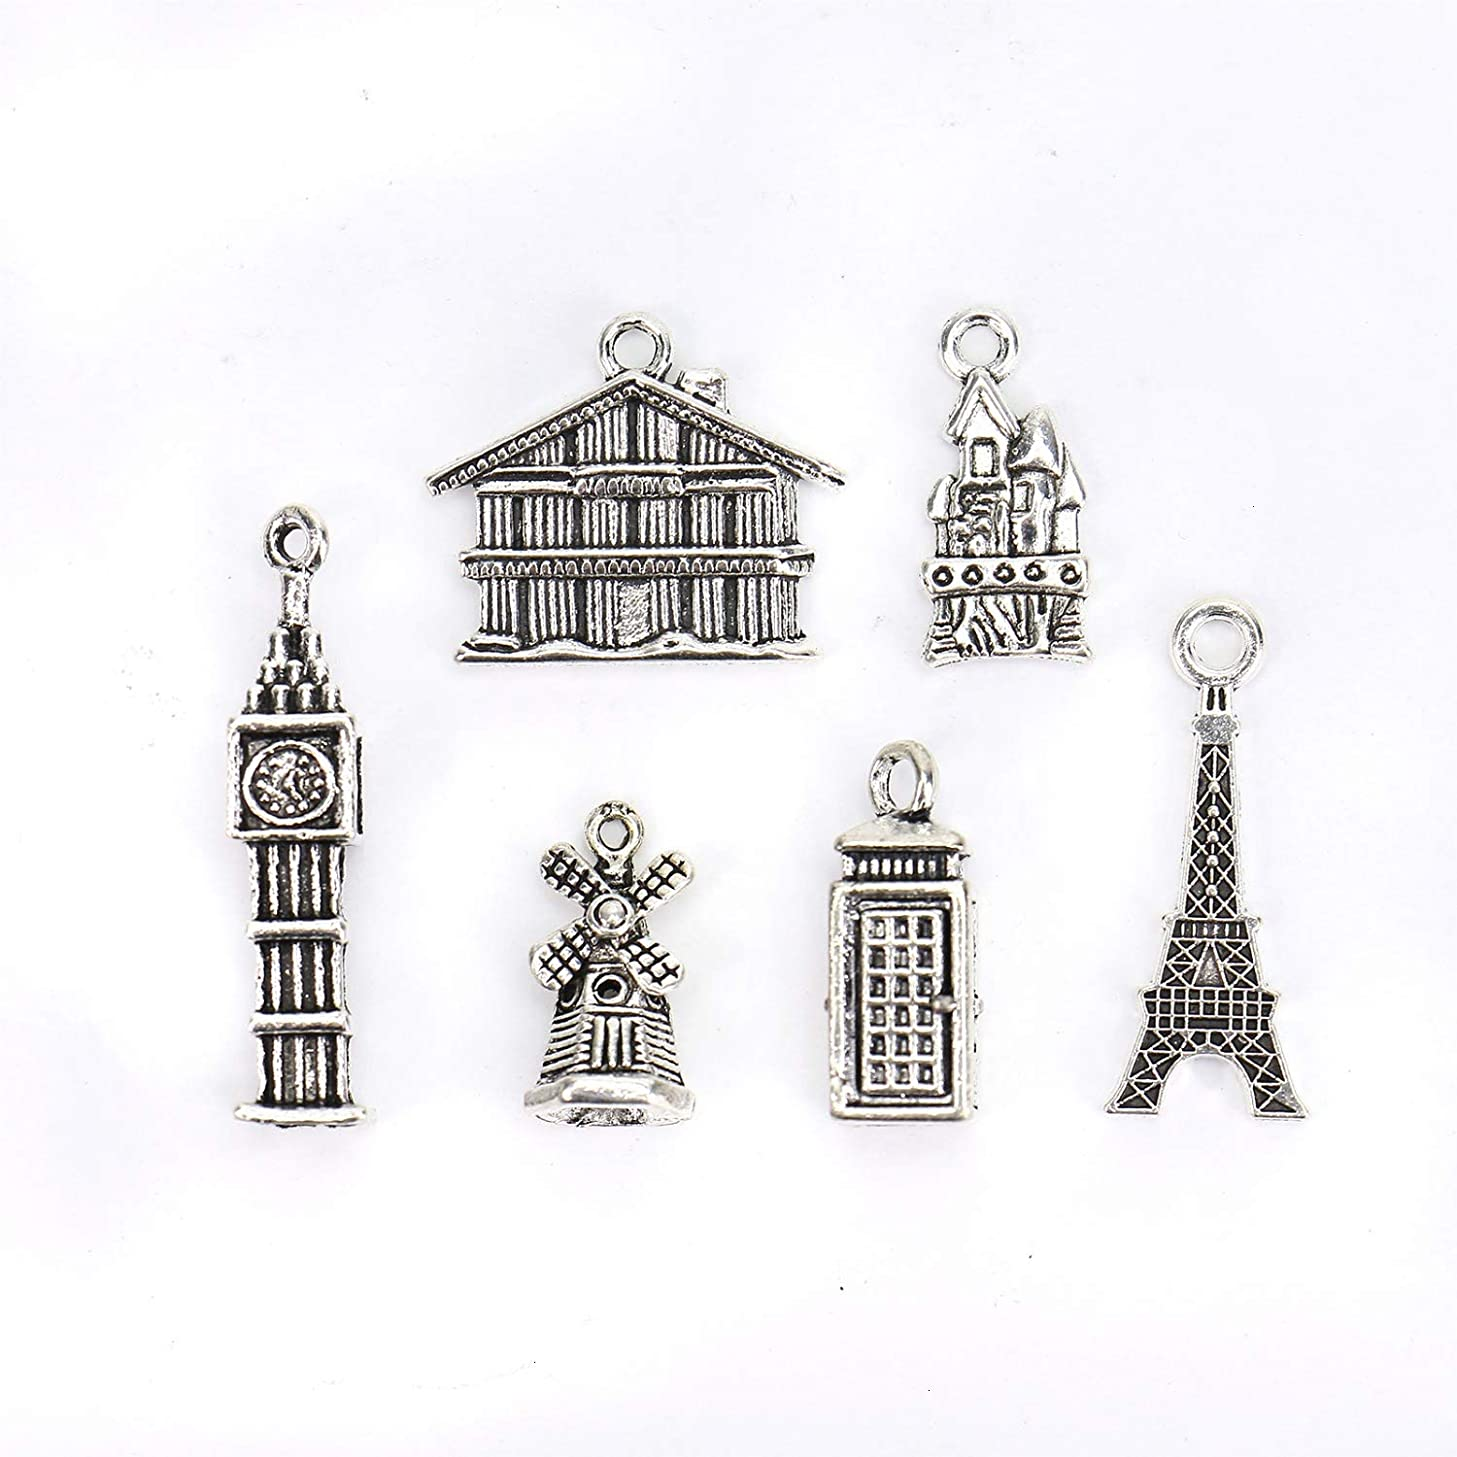 Monrocco 60 Pcs Antique Silver Travel Building Charm Pendant House Windmill Castle Eiffel Tower Charms for Bracelets Jewelry Making